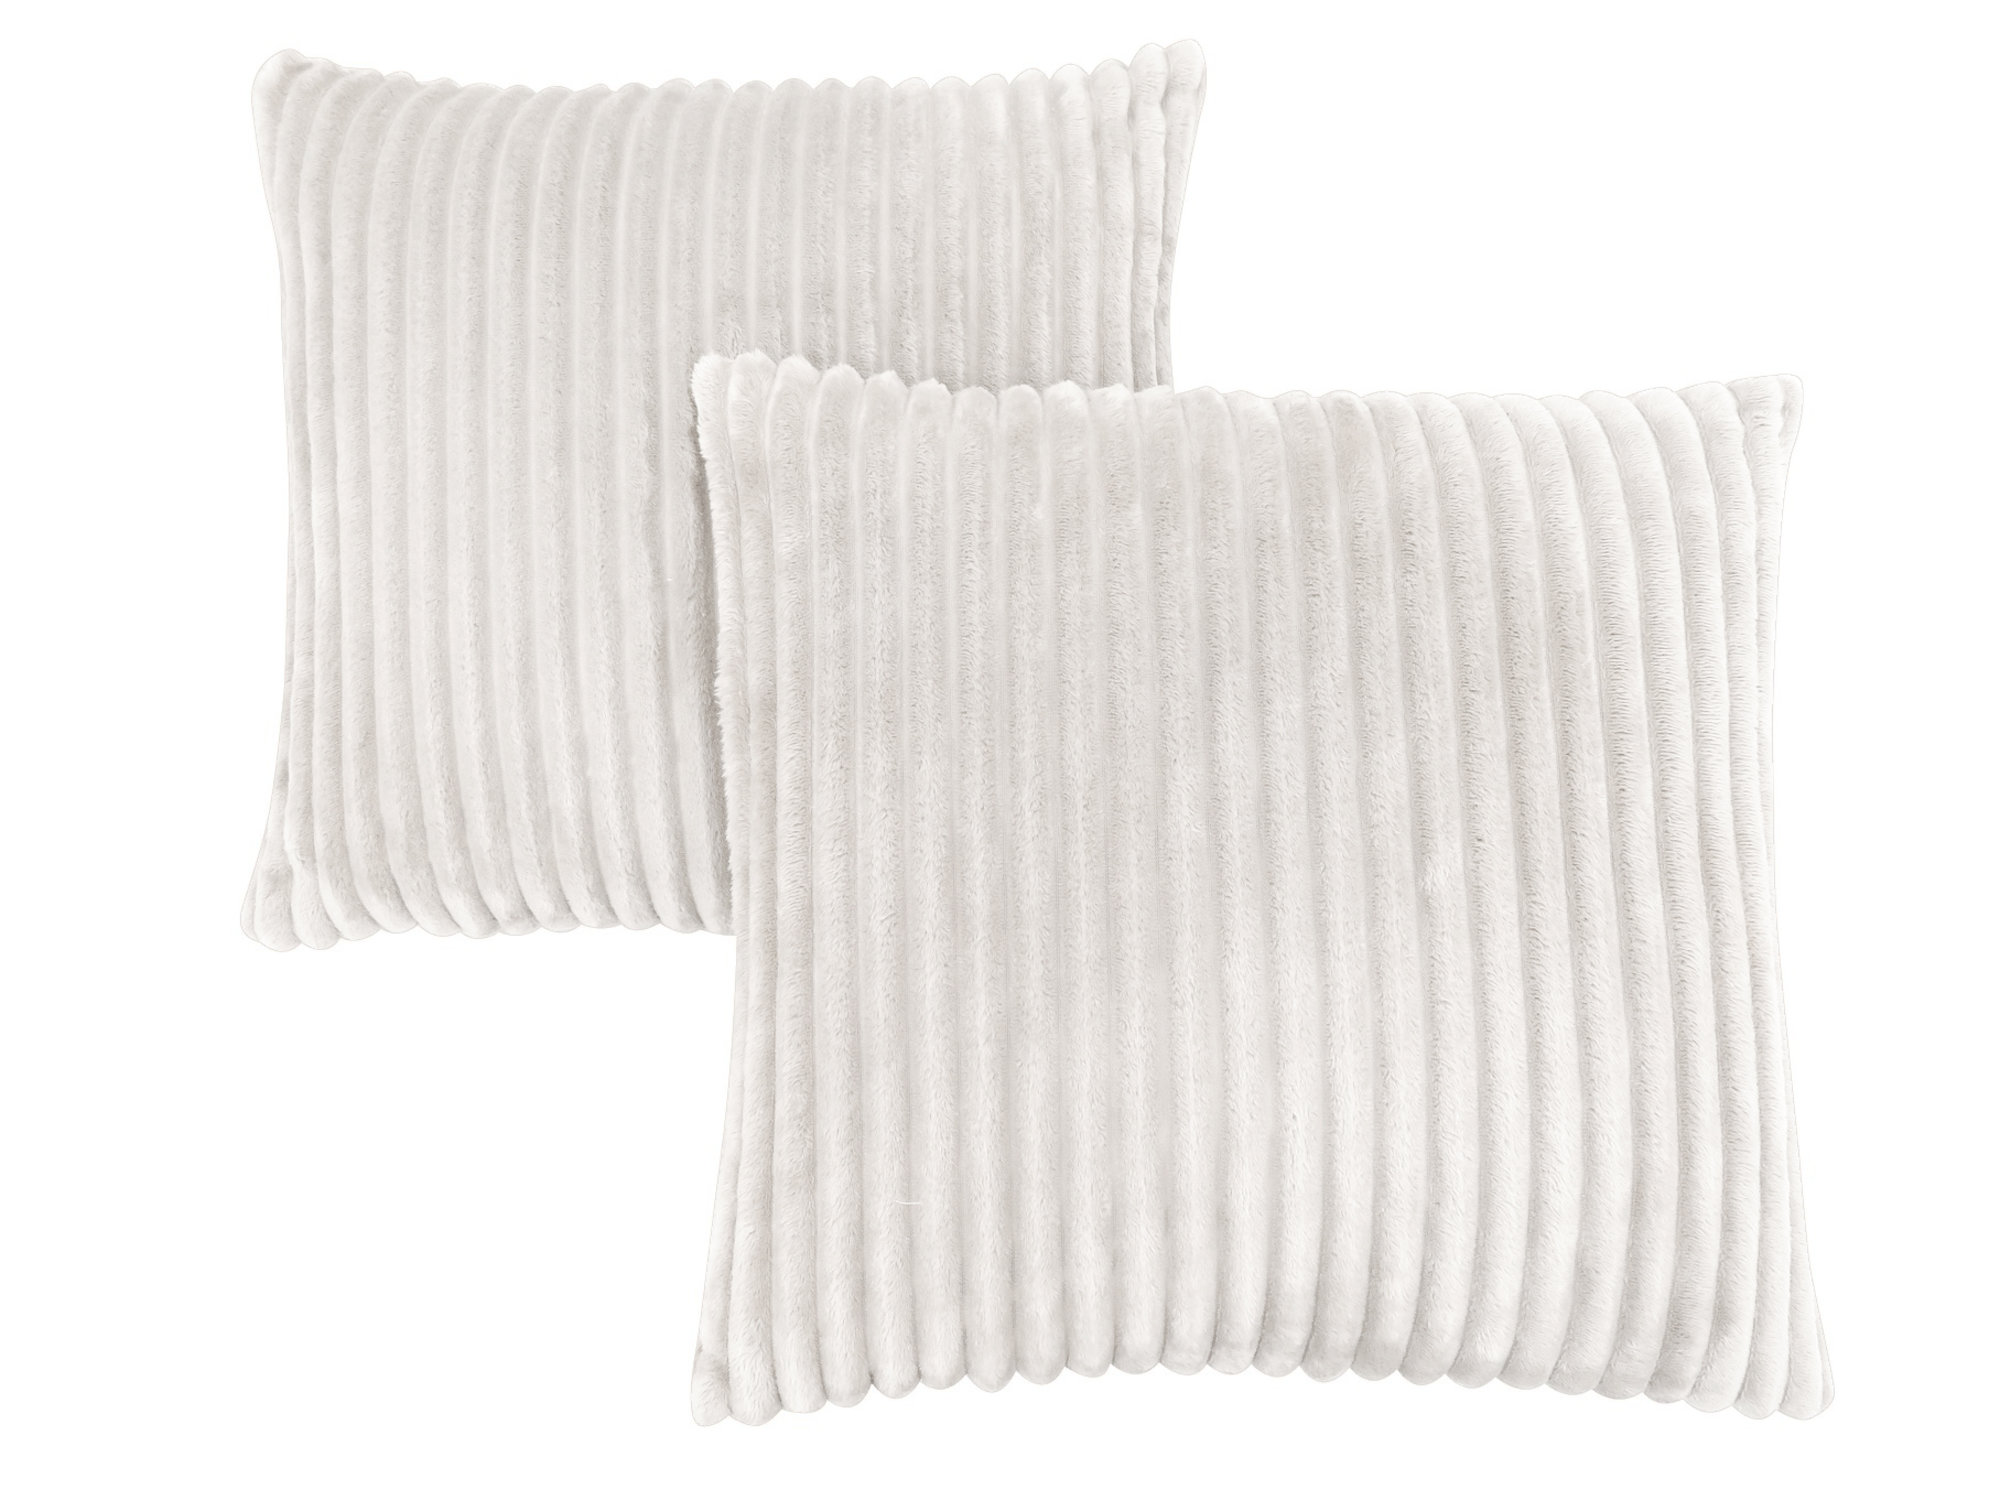 "PILLOW - 18""X 18"" / IVORY TEXTURED RIB / 2PCS"